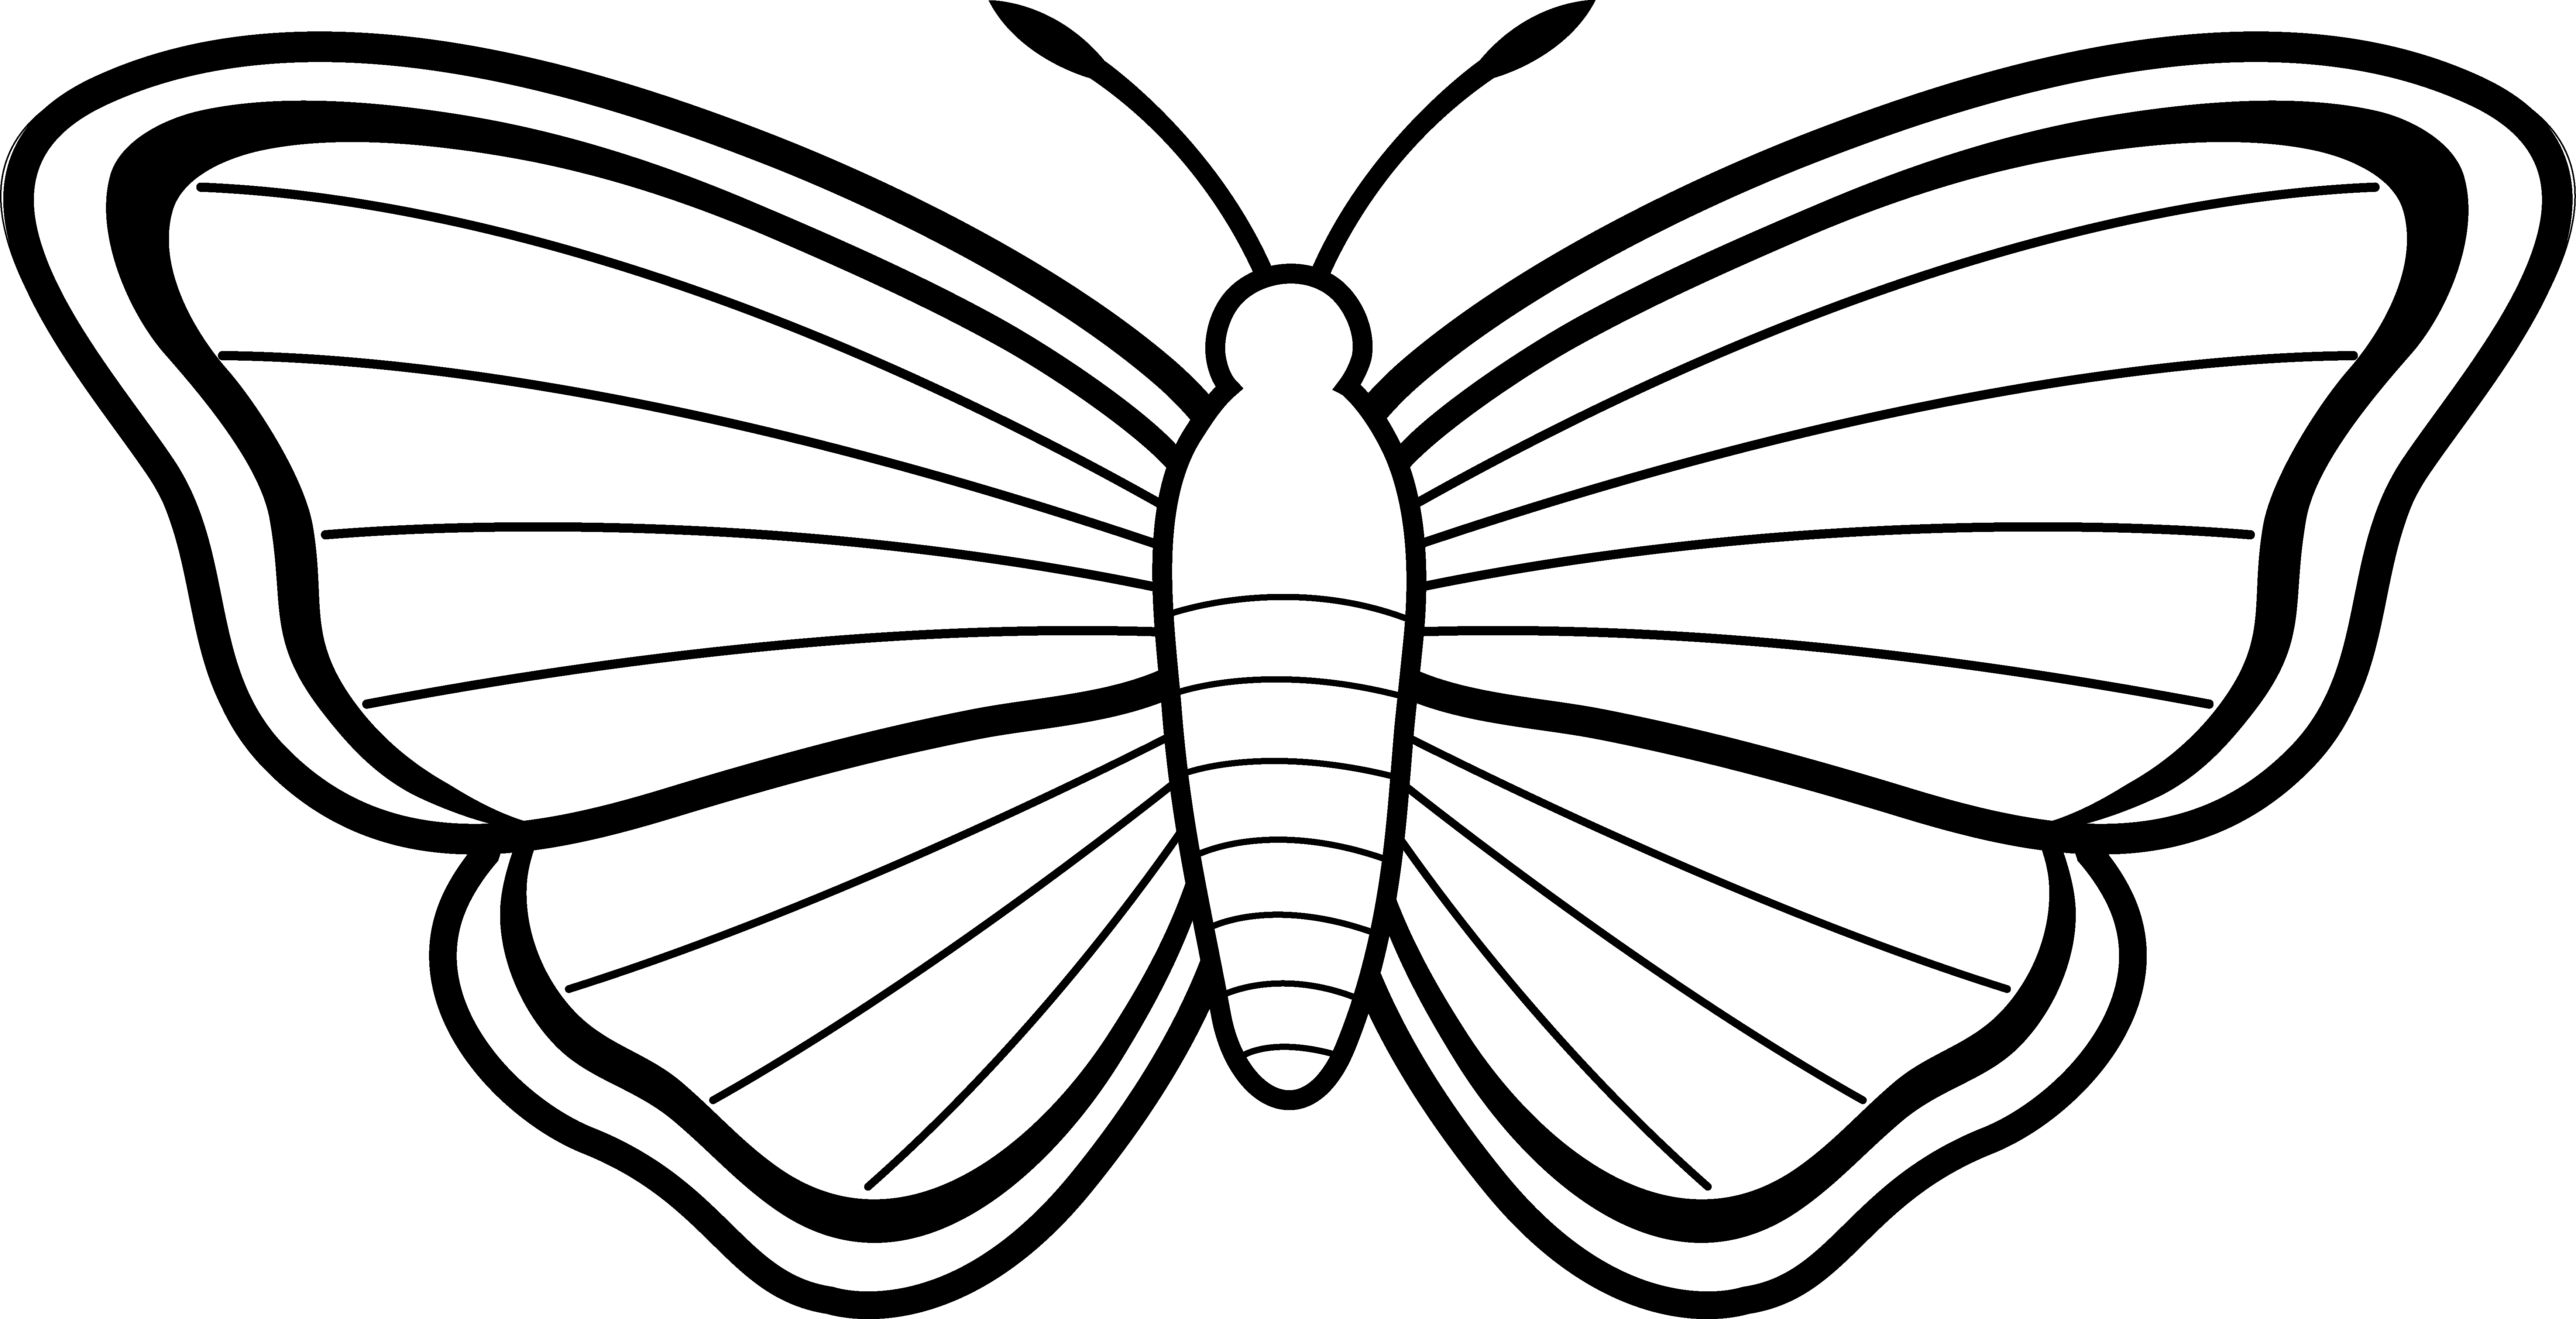 Butterflies black and white clipart free Free Butterfly Images Black And White, Download Free Clip Art, Free ... free